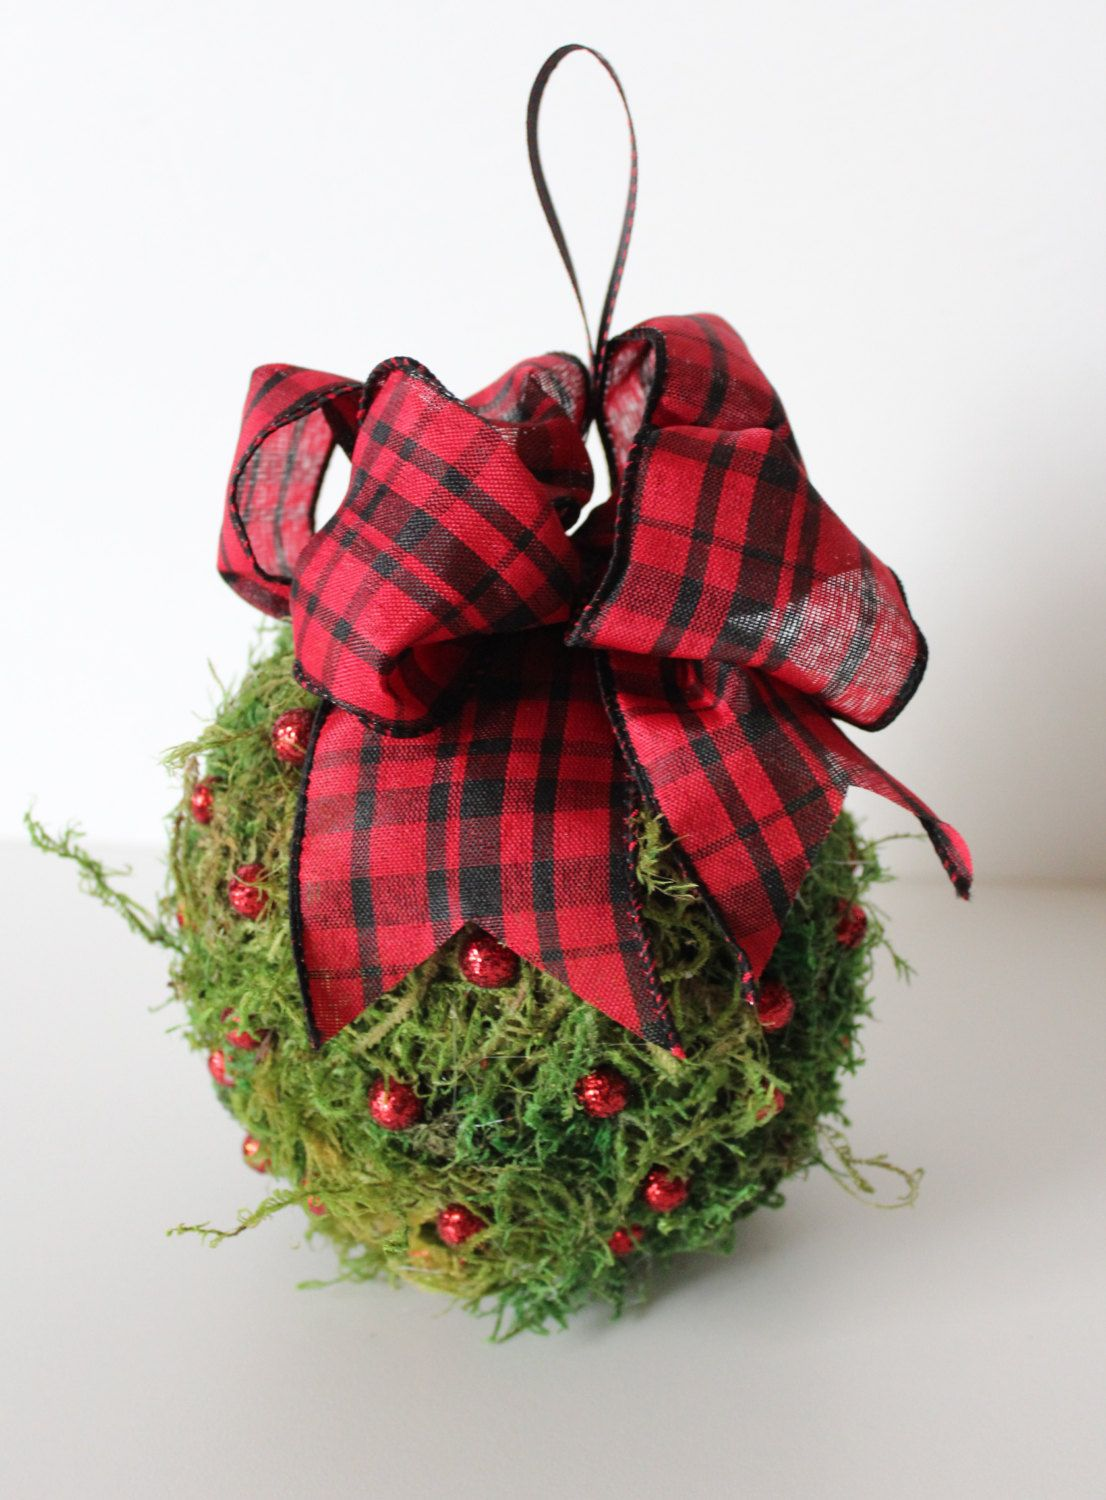 Christmas Kissing Ball Mistletoe Red And Black Theme Moss Modern Rustic Holiday Decorations Indoor